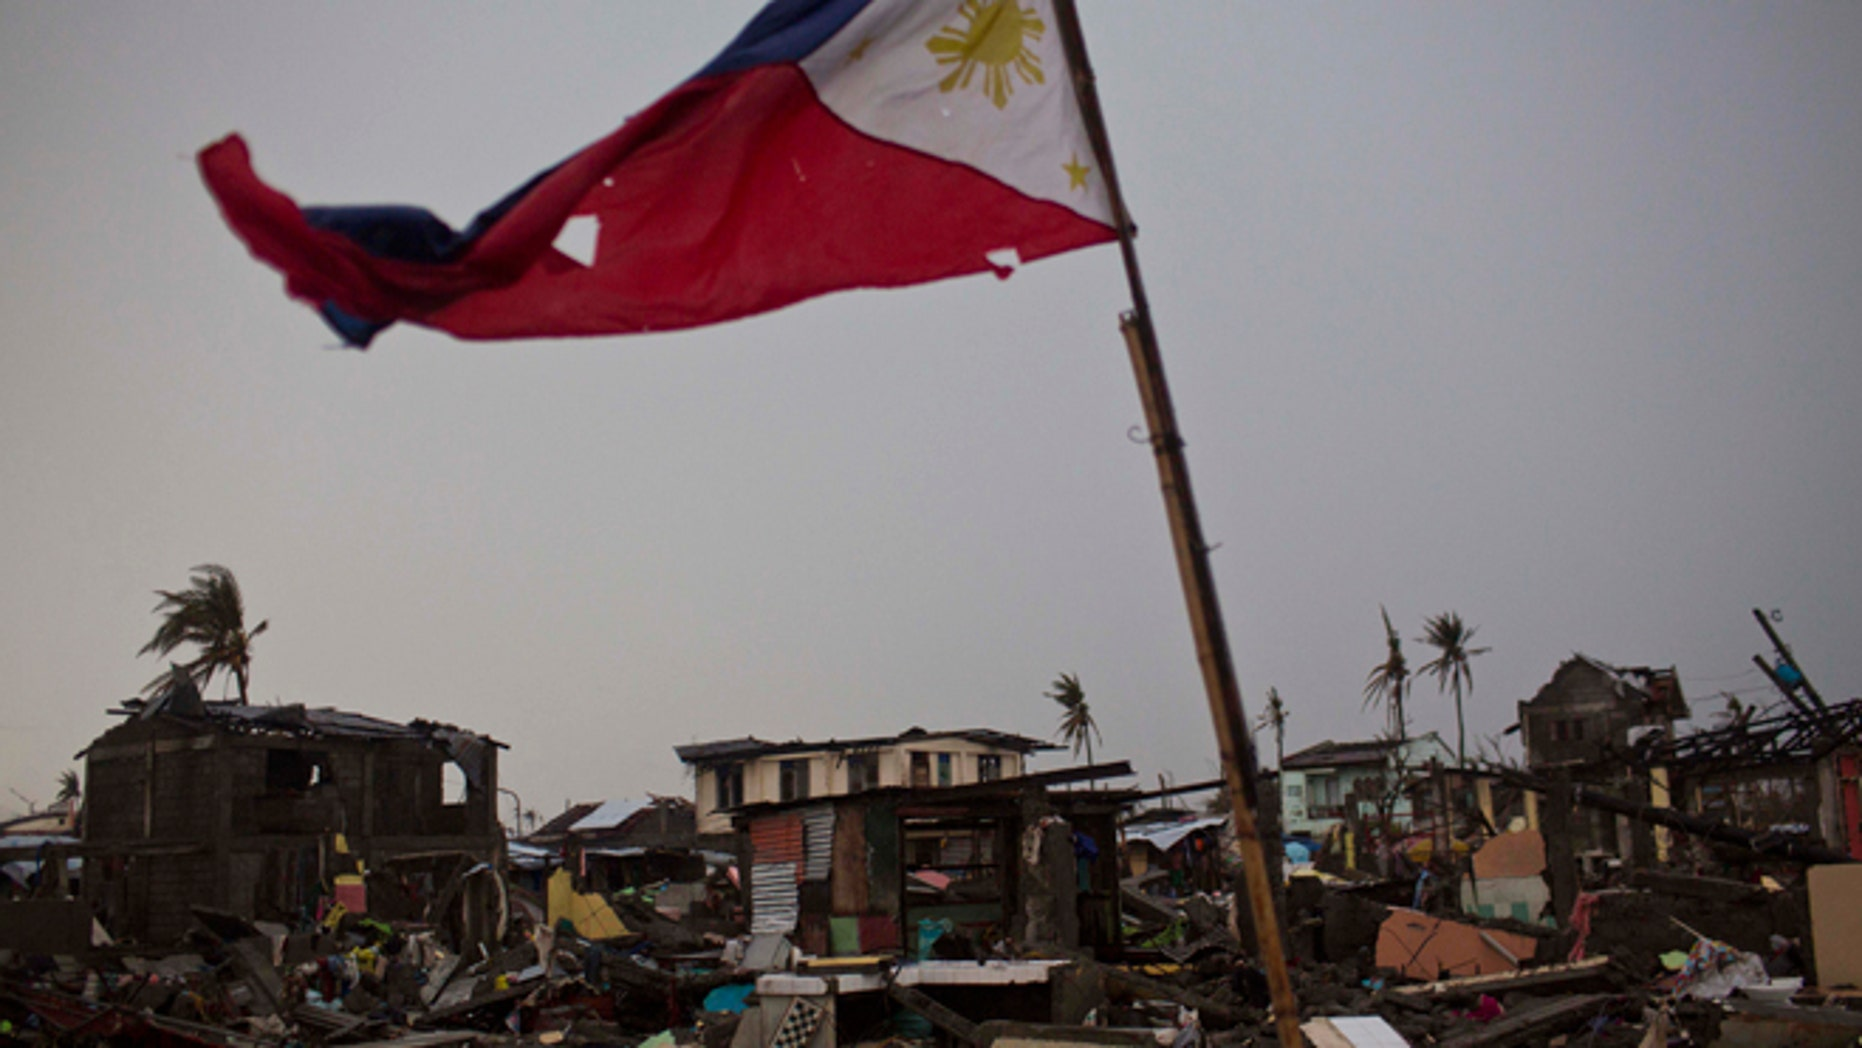 A flag of the Philippines flies over a destroyed neighborhood in Tacloban, Philippines on Friday Nov. 22, 2013. Hundreds of thousands of people were displaced by Typhoon Haiyan, which tore across several islands in the eastern Philippines on Nov. 8. (AP Photo/David Guttenfelder)